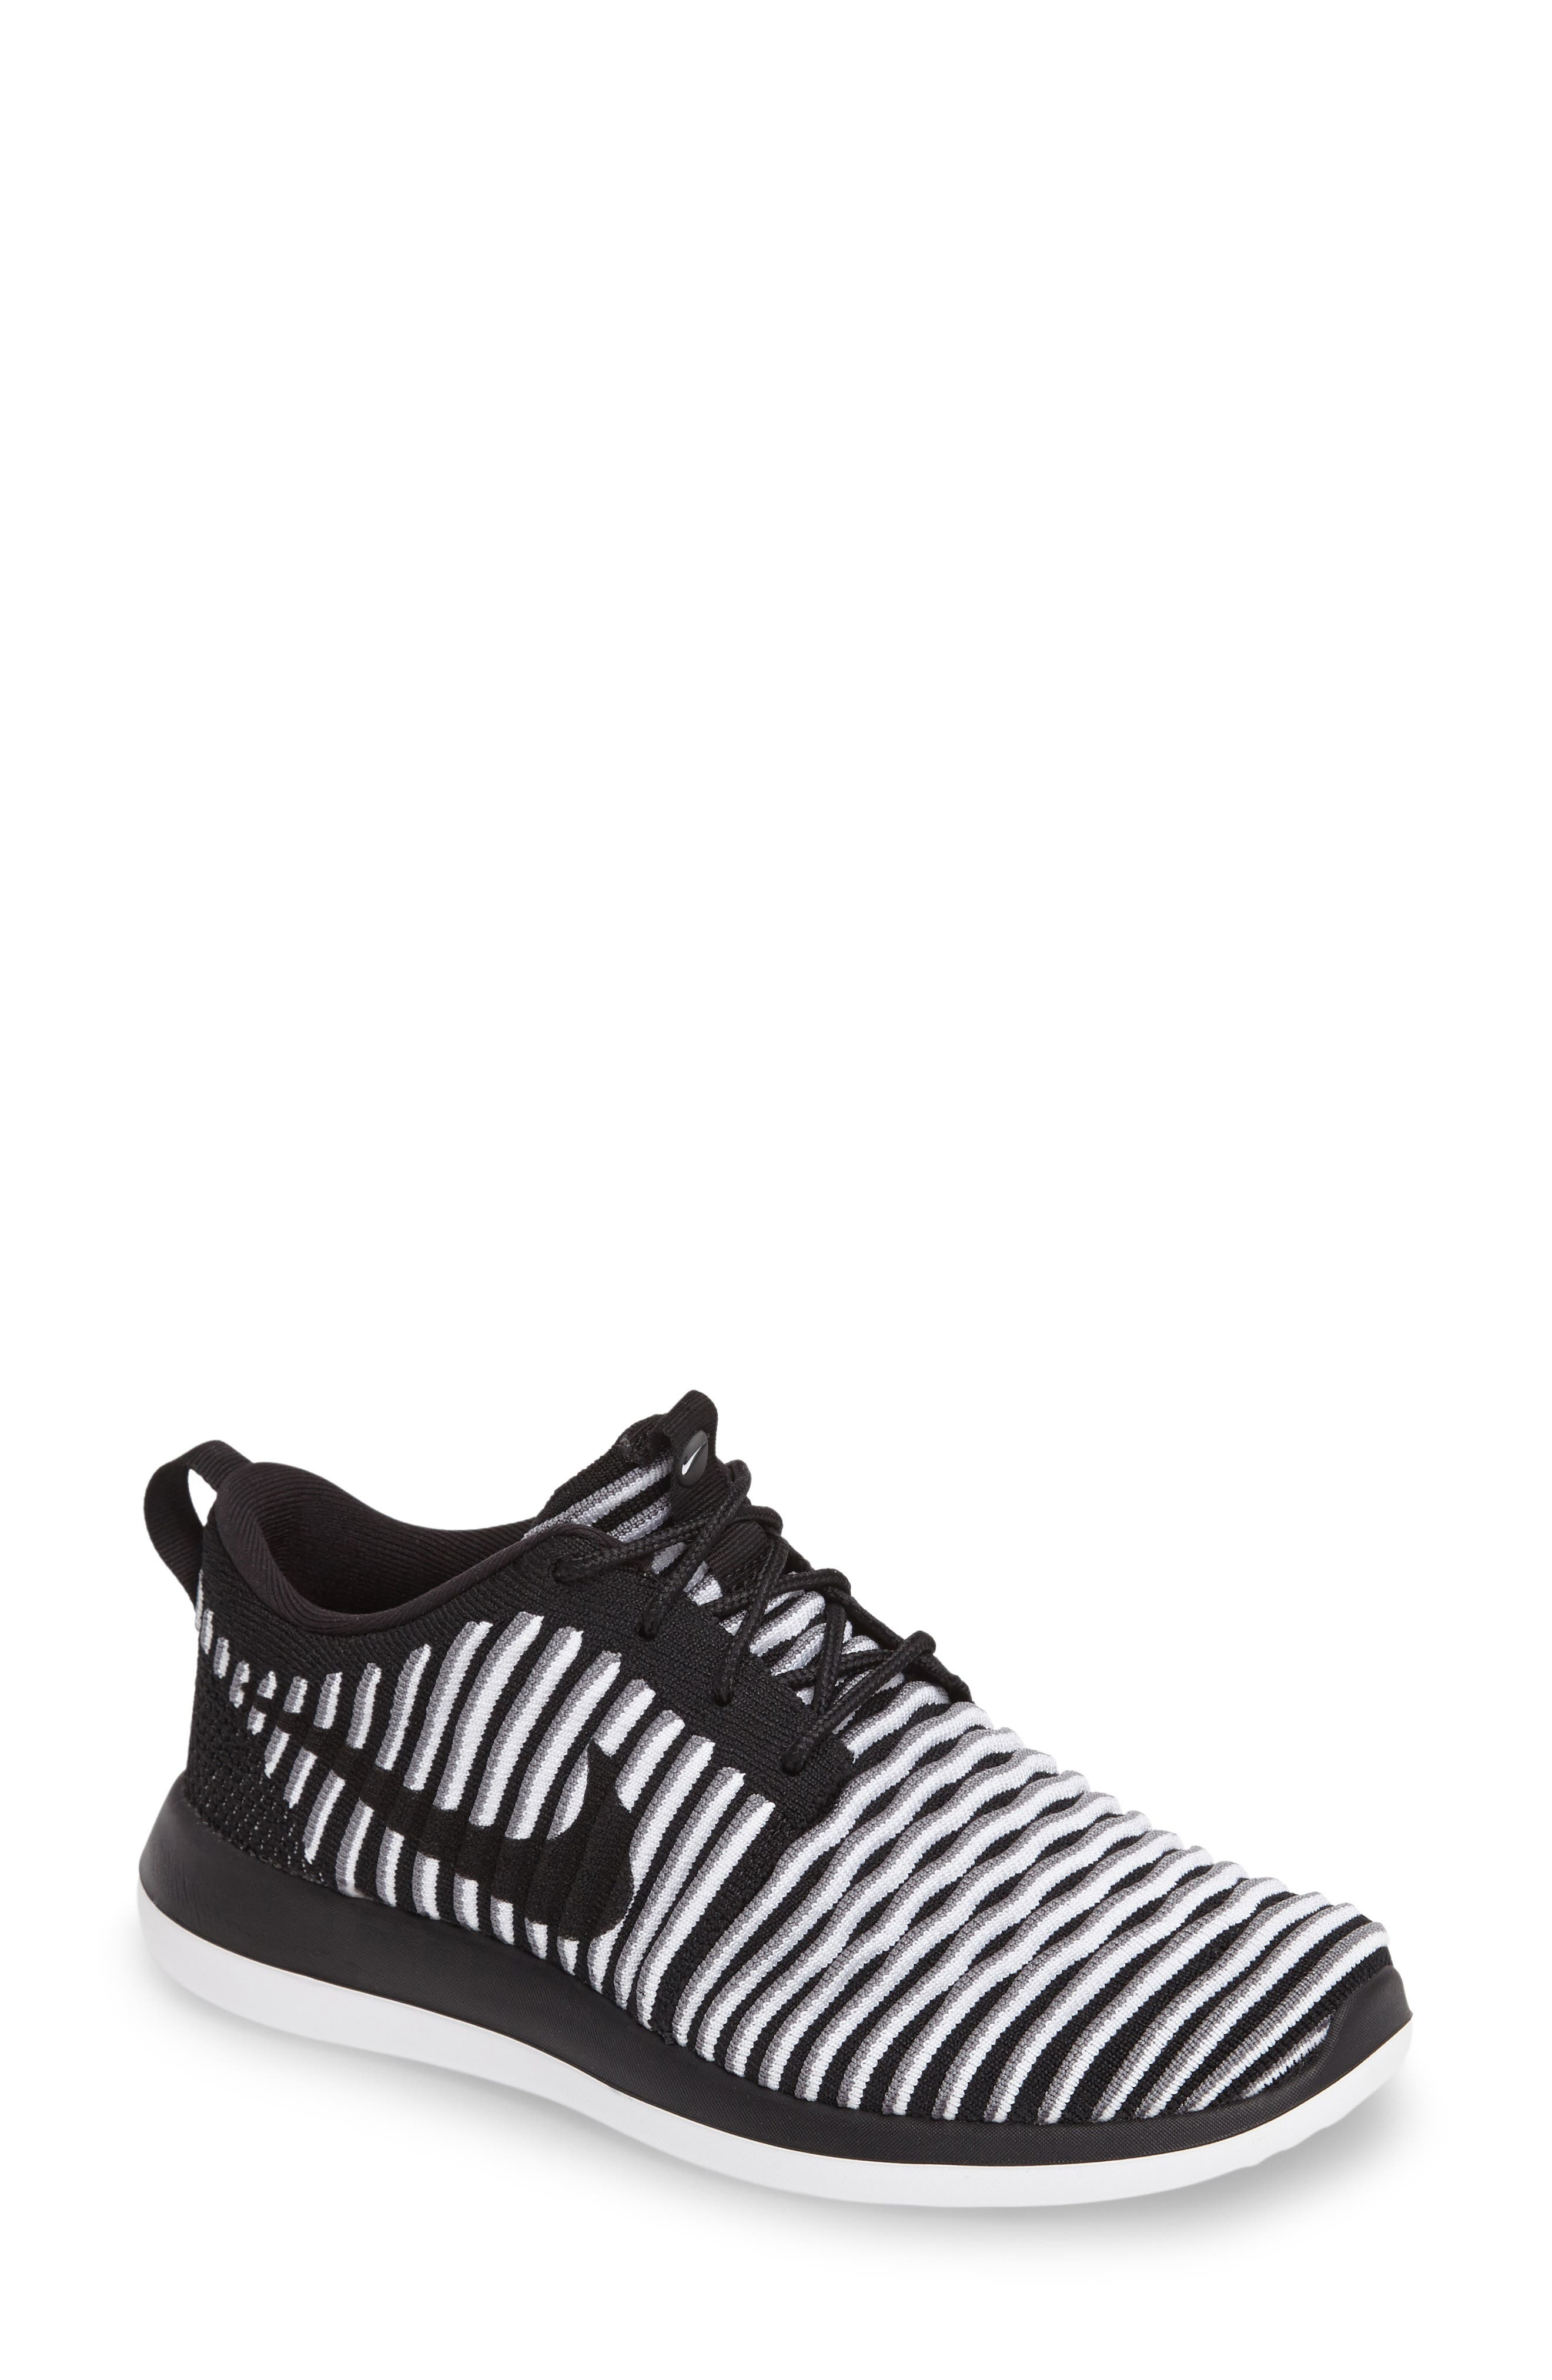 Roshe Two FlyKnit Sneaker, Main, color, 001